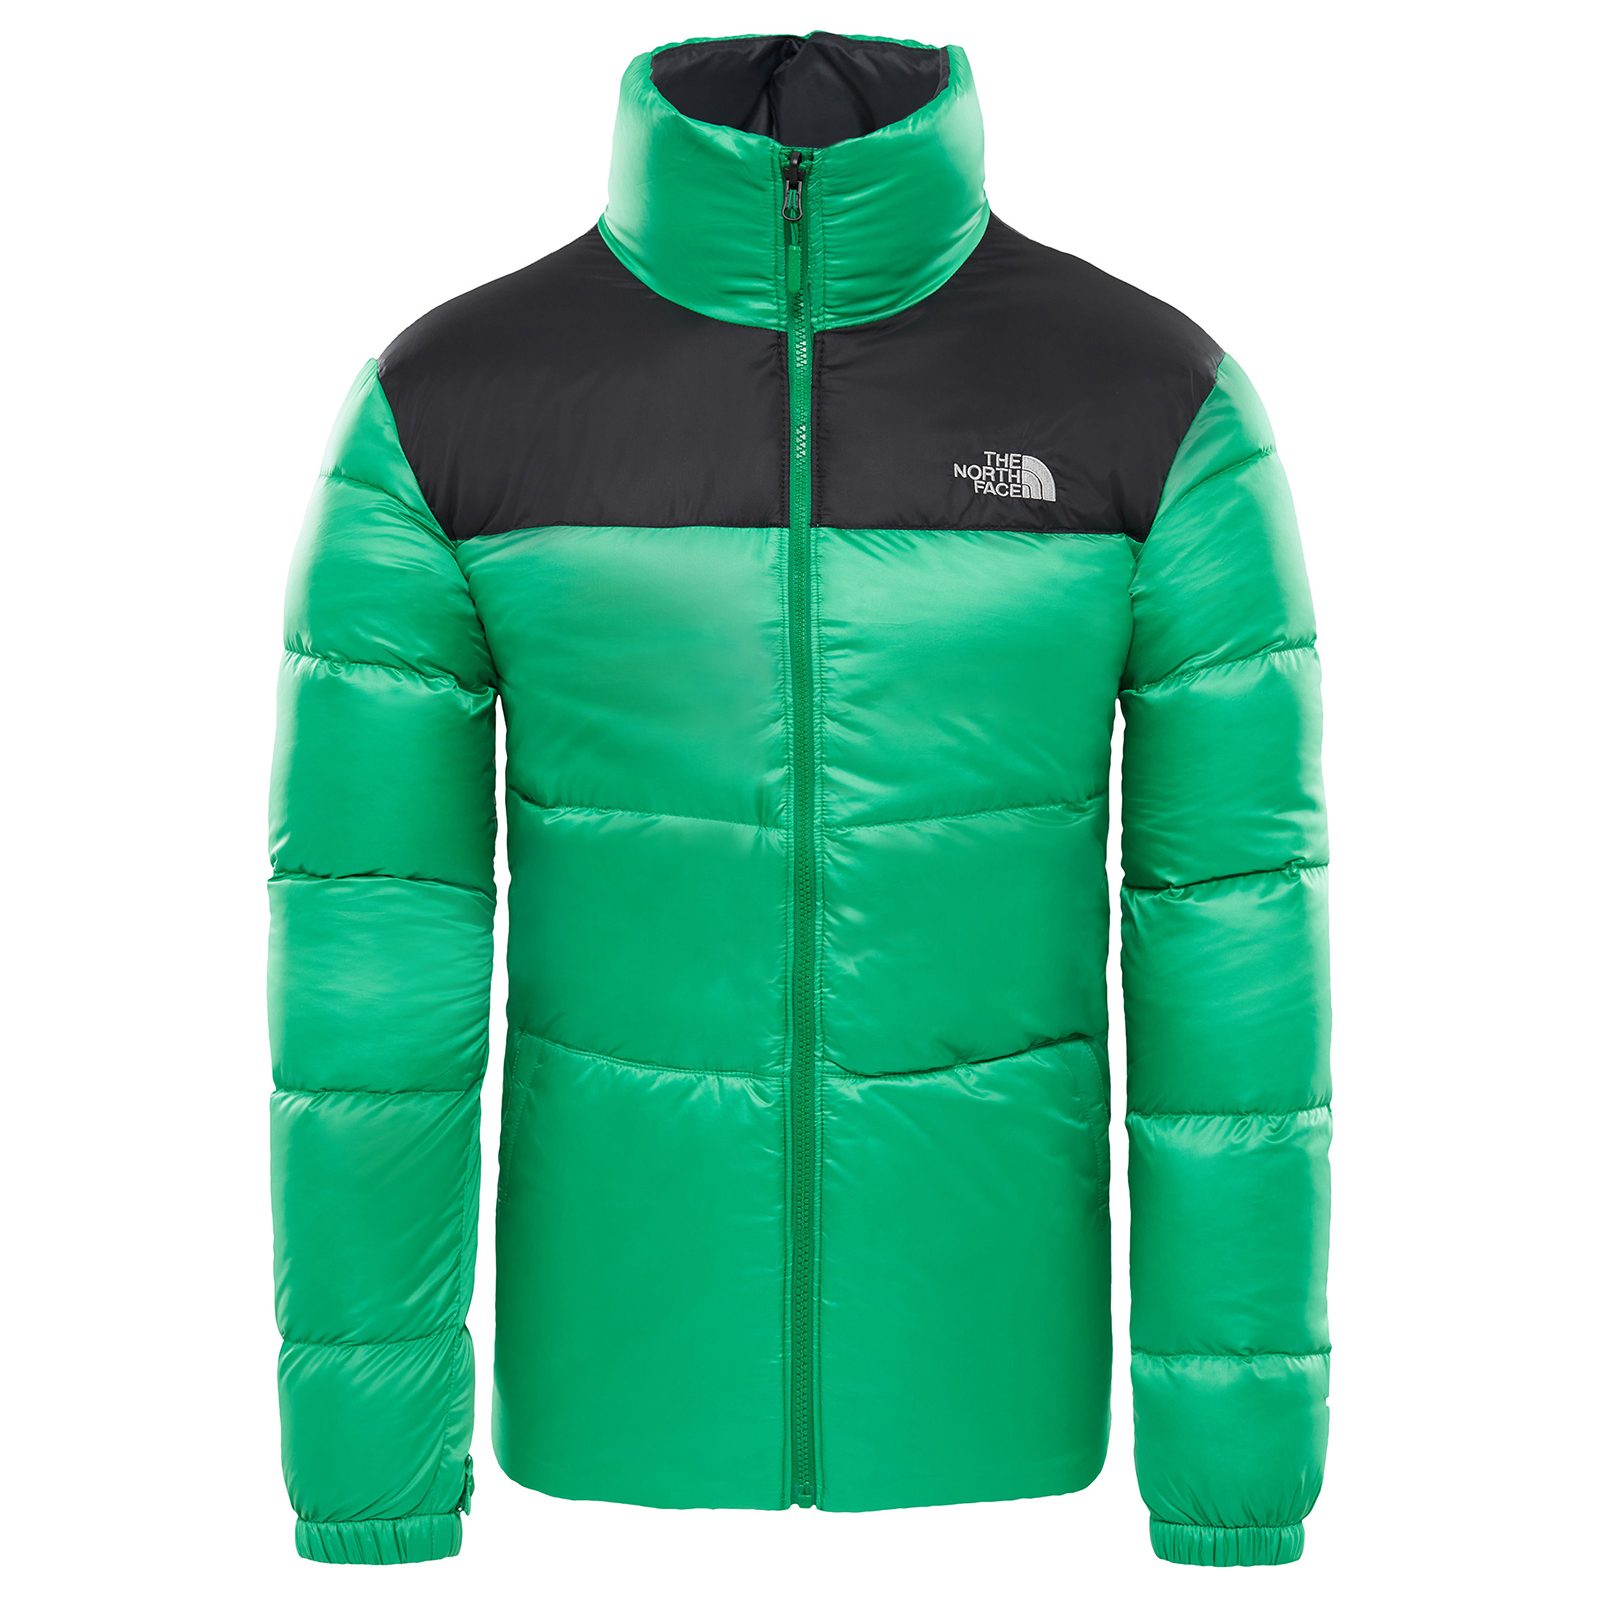 Outdoor Insulated Clothing & Jackets at Webtogs